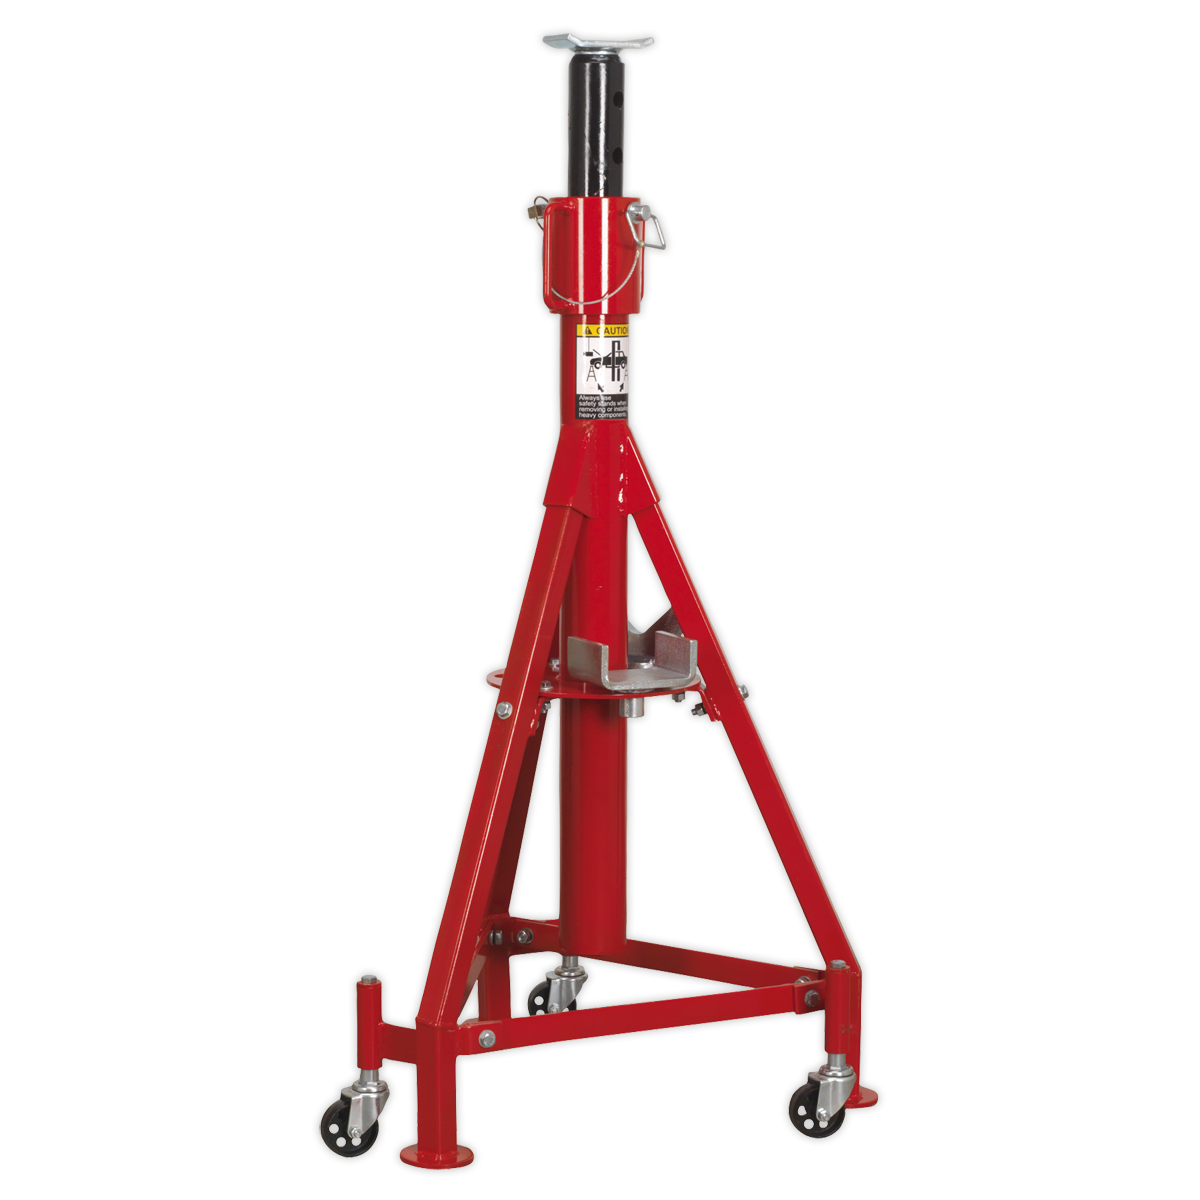 High Level Commercial Vehicle Support Stand 5tonne Capacity